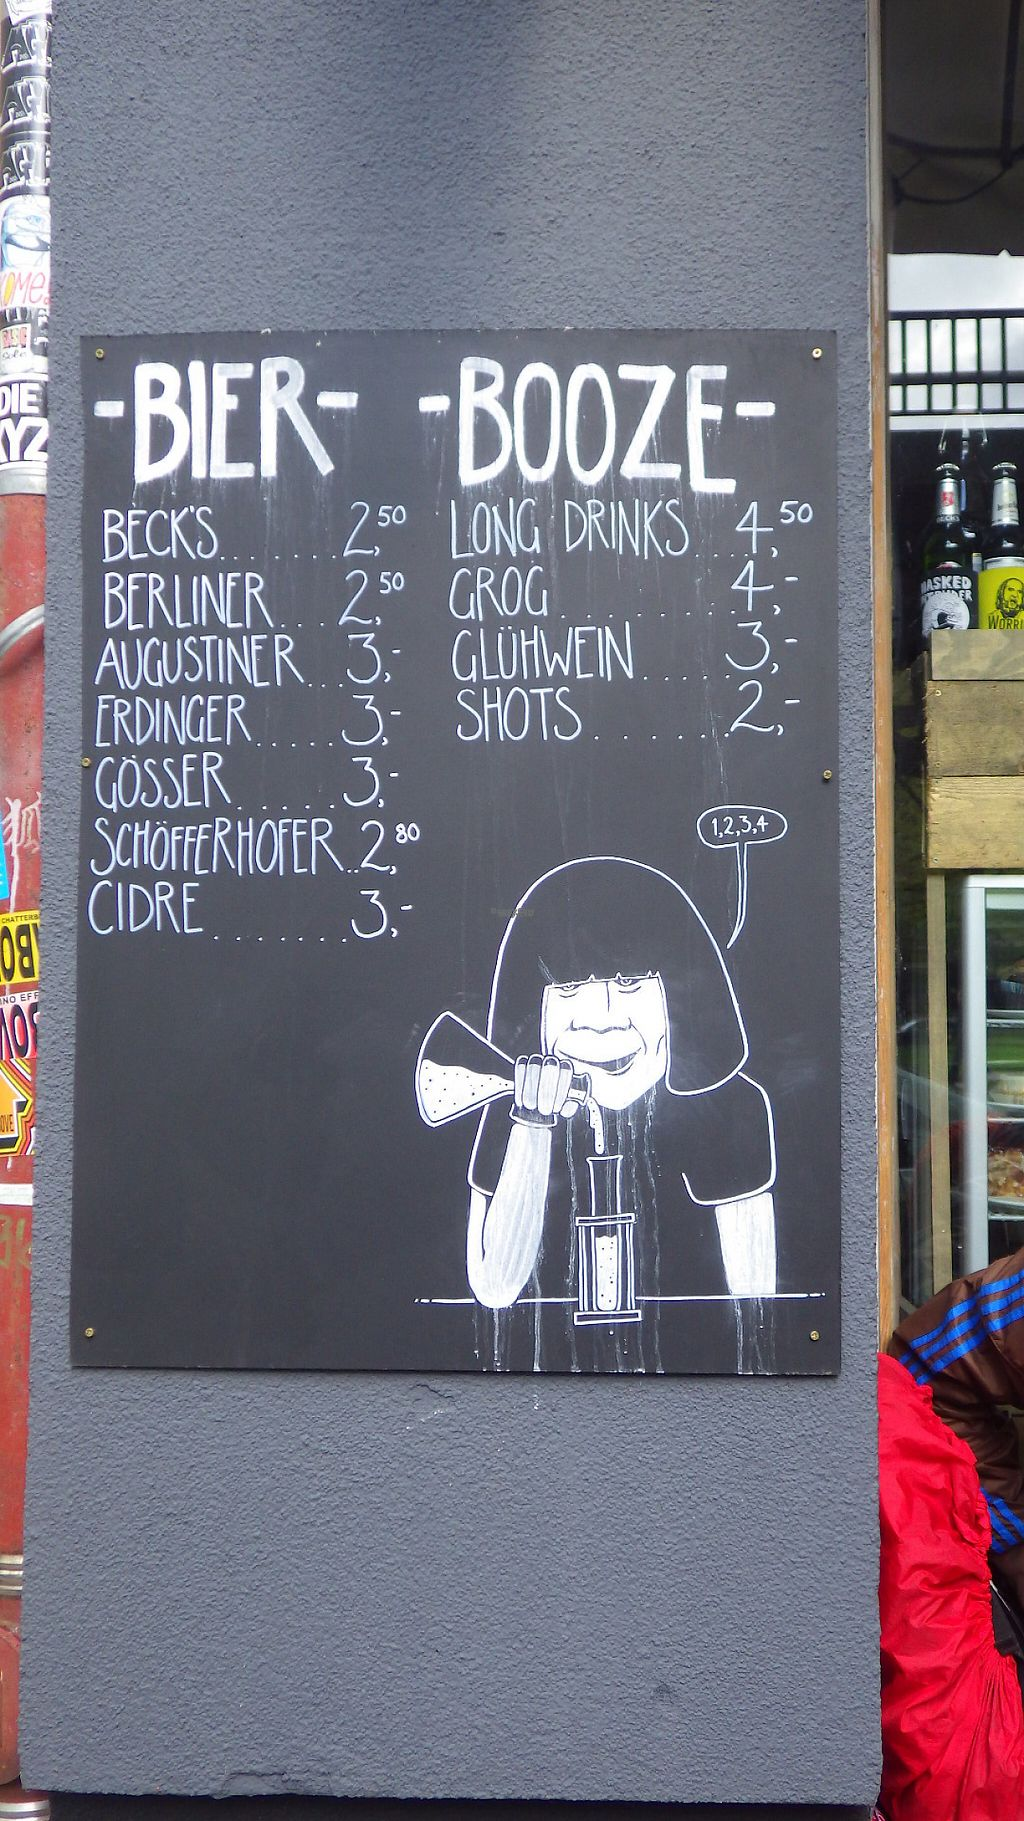 """Photo of Ramones Museum Berlin  by <a href=""""/members/profile/deadpledge"""">deadpledge</a> <br/>Beer menu <br/> April 22, 2017  - <a href='/contact/abuse/image/56423/250886'>Report</a>"""